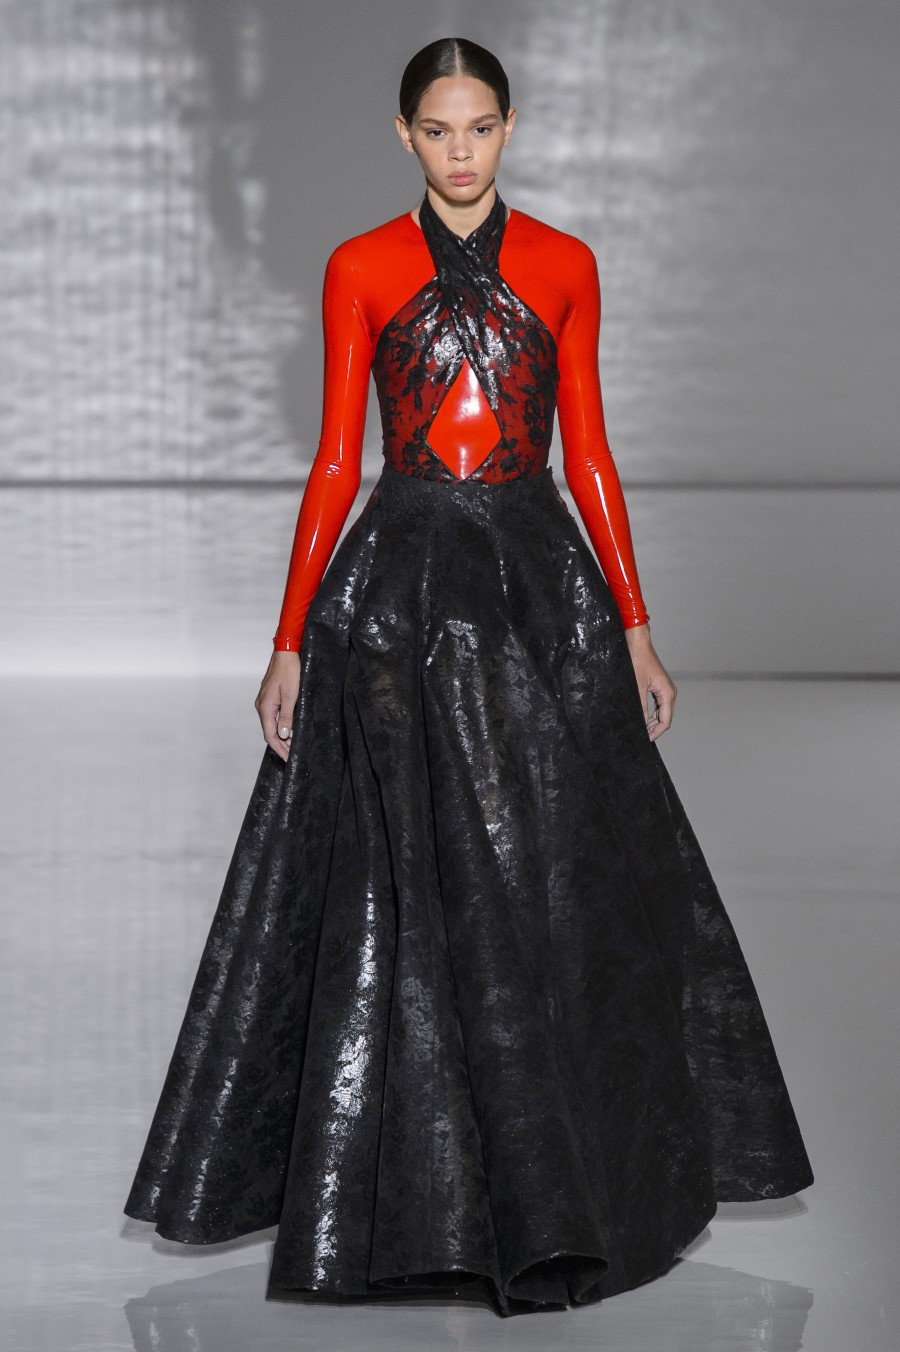 Givenchy Haute Couture Spring Summer 2019